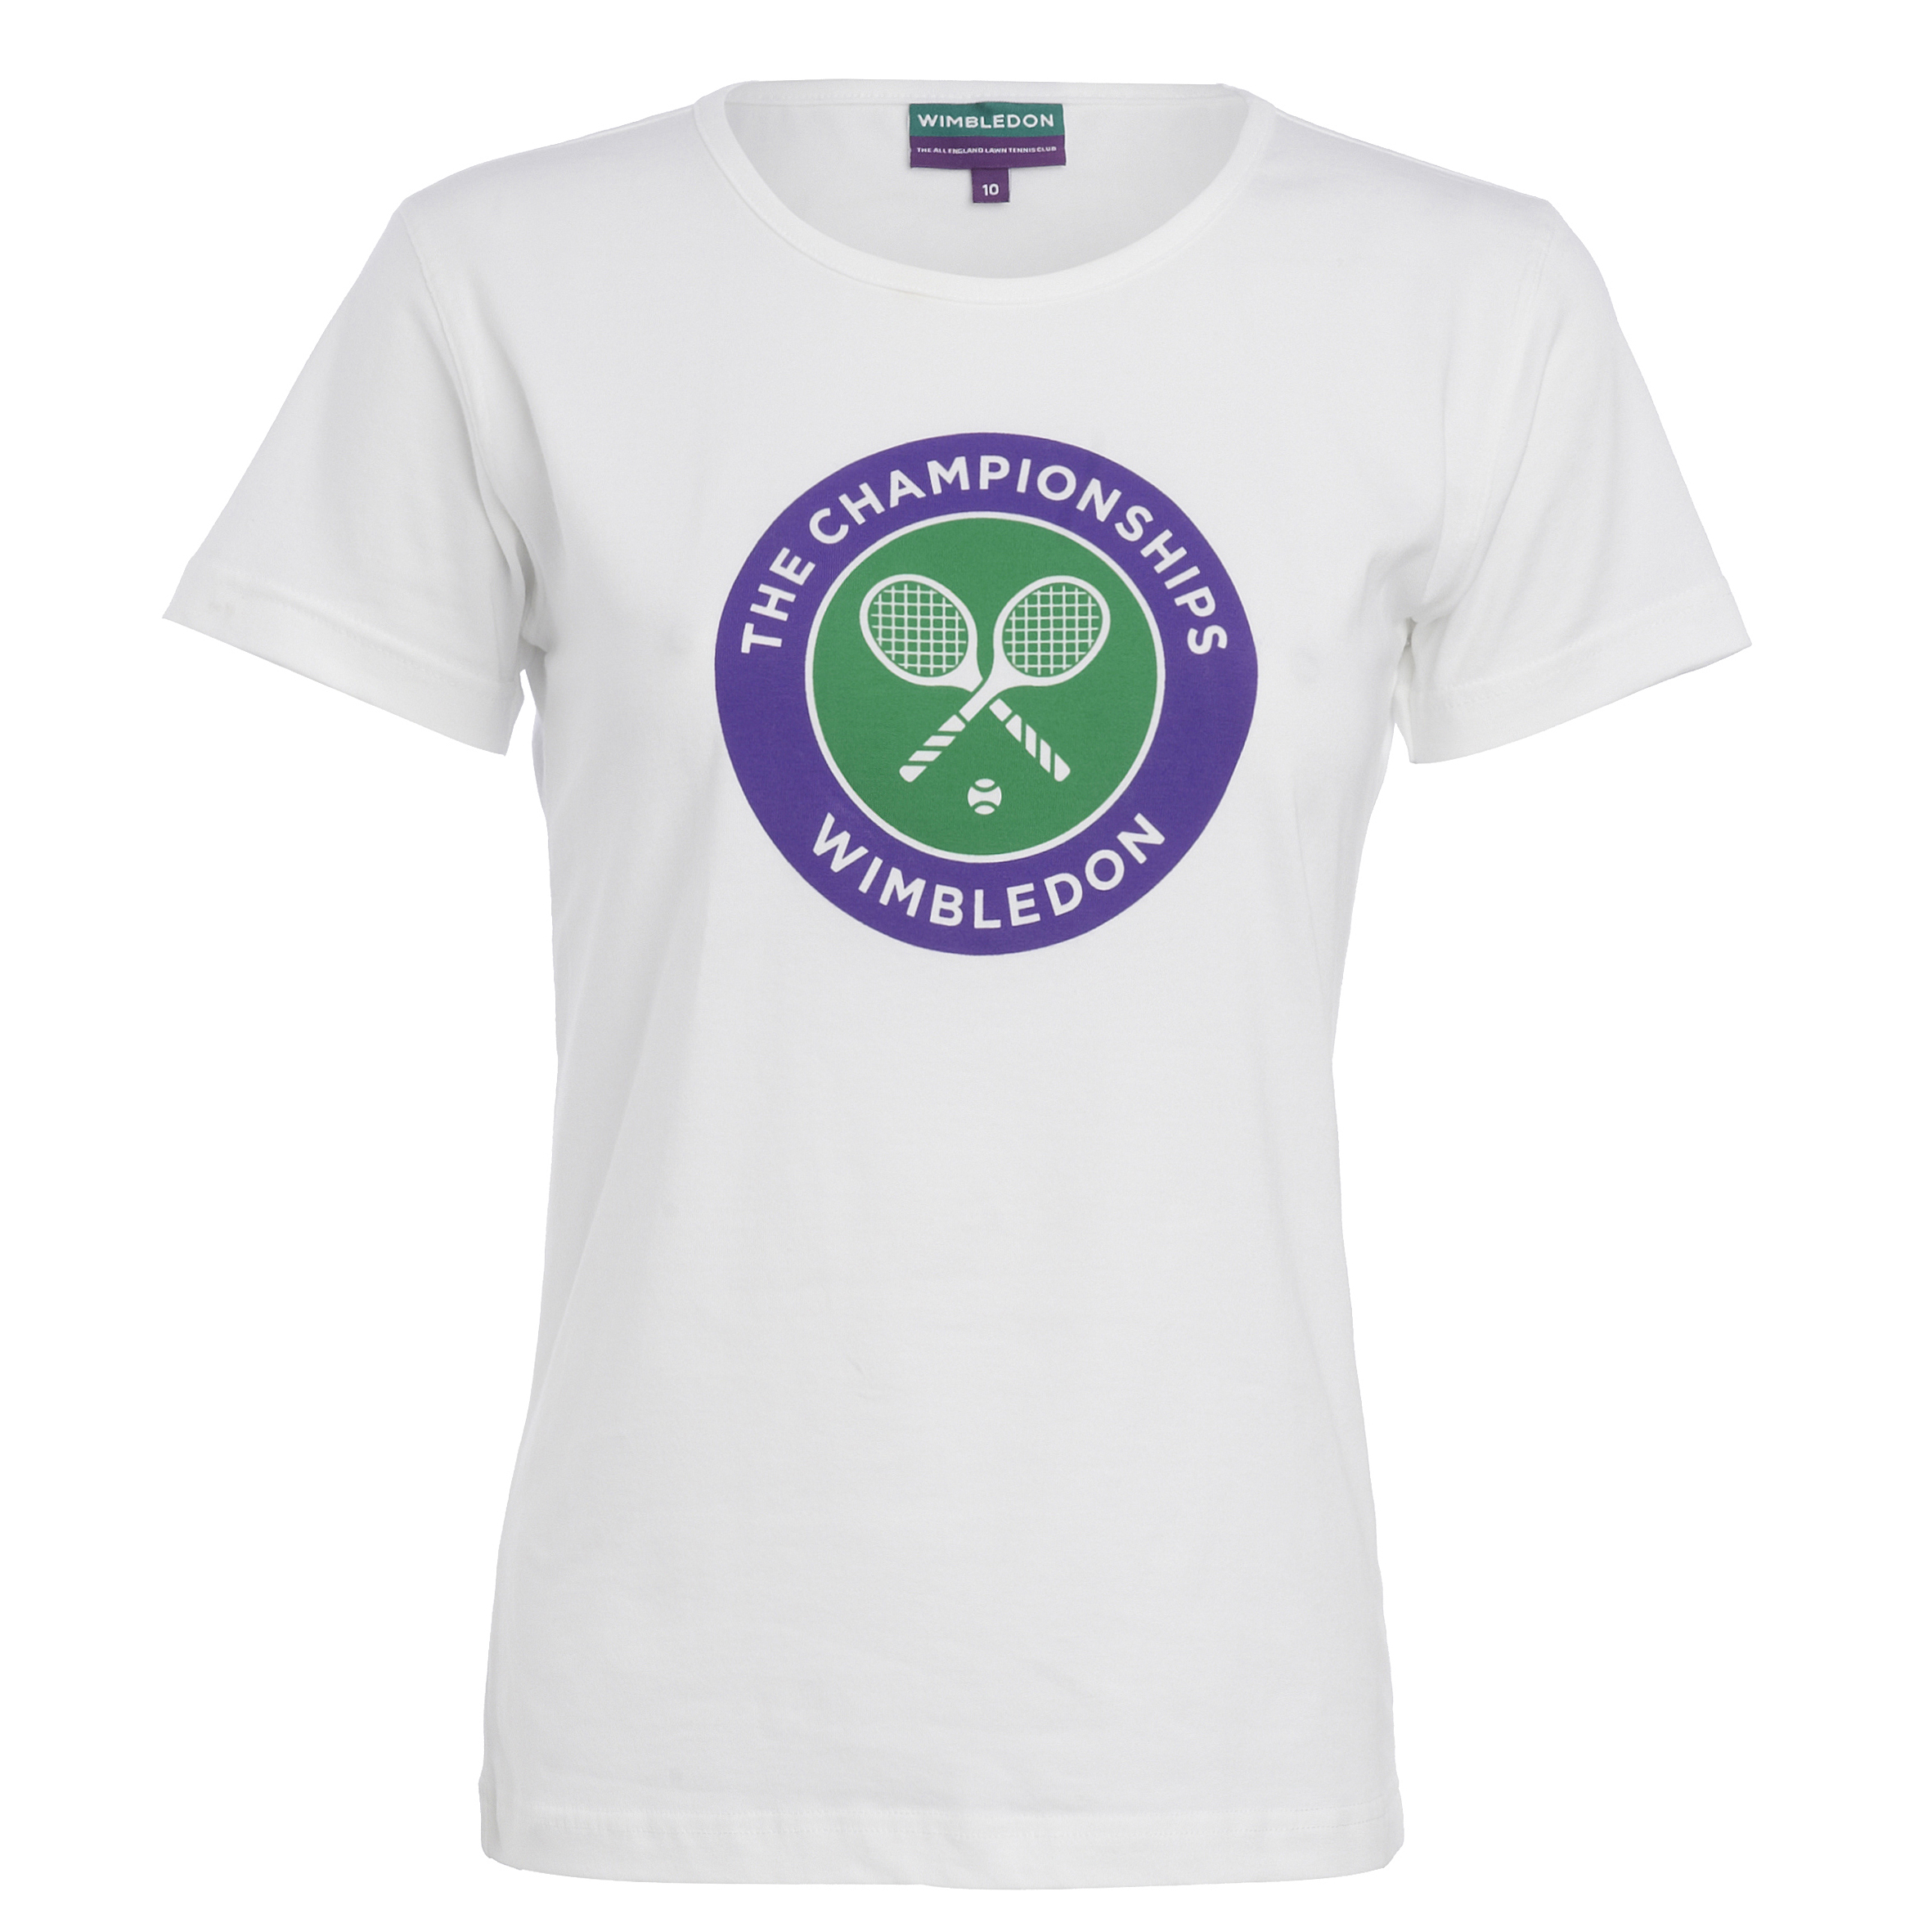 Wimbledon Crossed Rackets Print T-Shirt Womens White